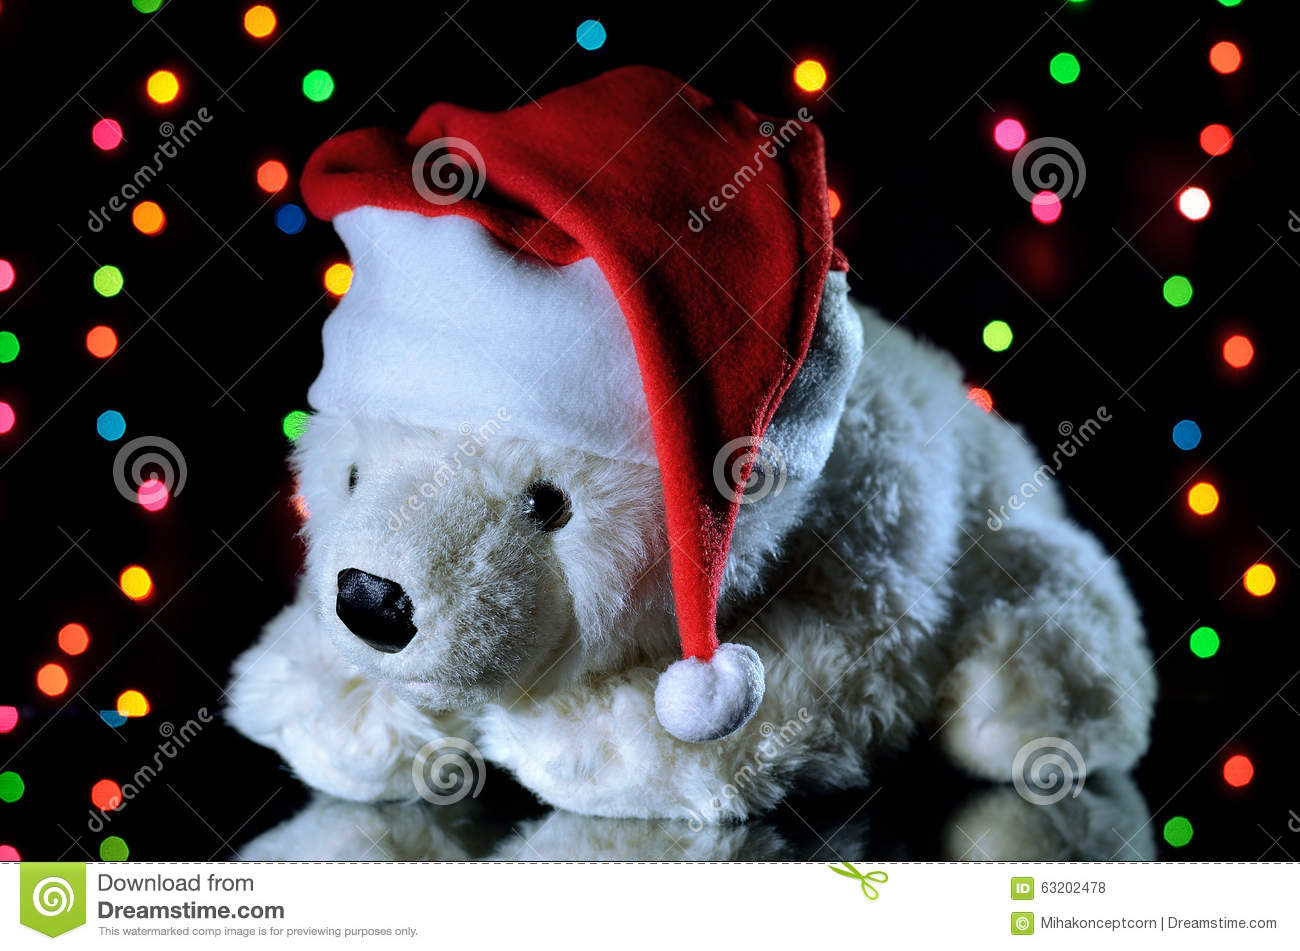 new year 2016 white teddy bear in a christmas hat christmas decoration with garland background for christmas advertising